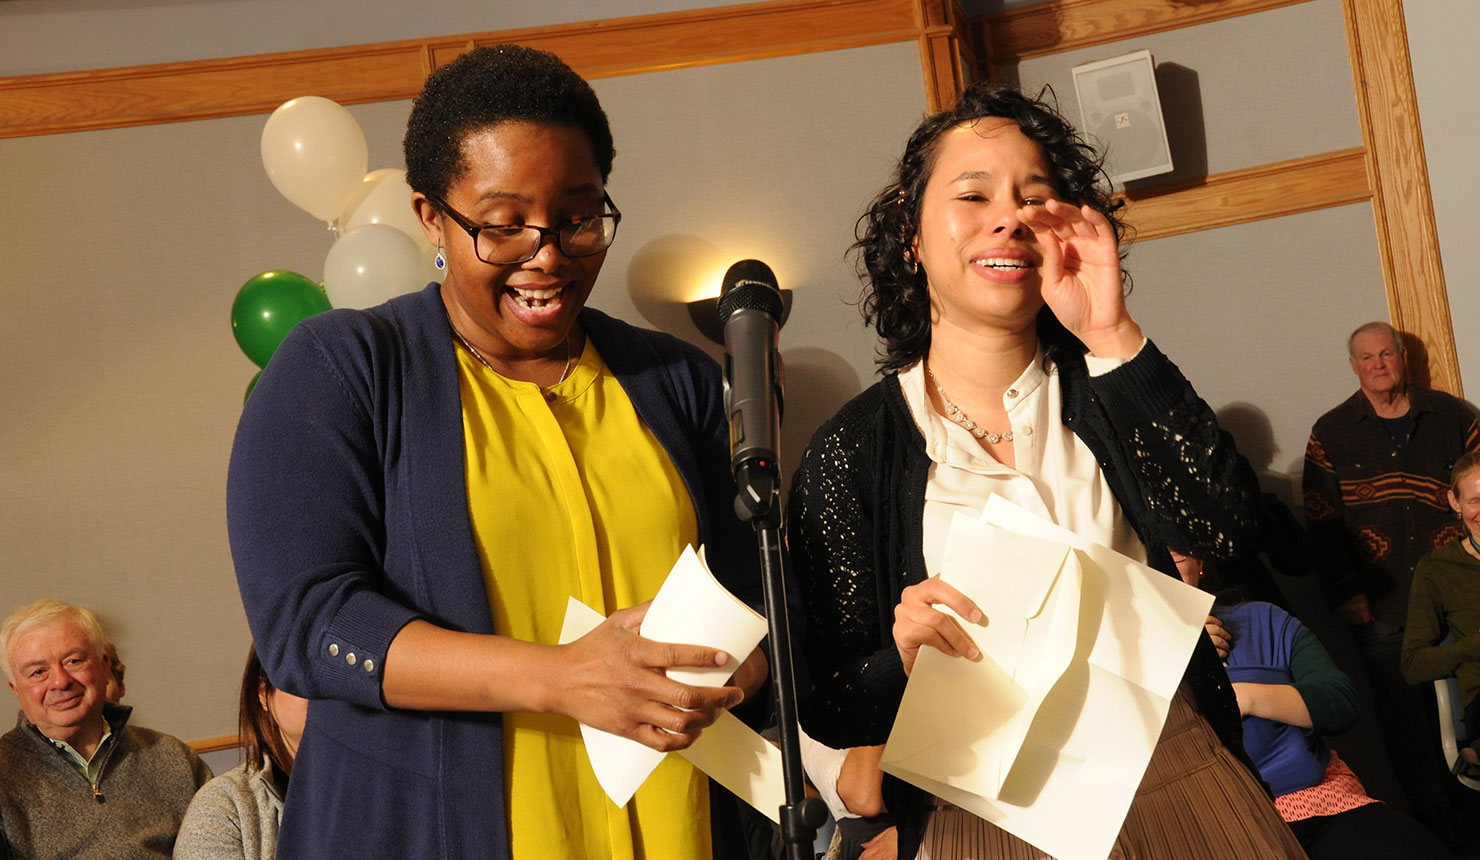 Best friends Asia Peek (left) and Lovelee Brown (right) open their Match Day letters together. (photo by Jon Gilbert Fox)